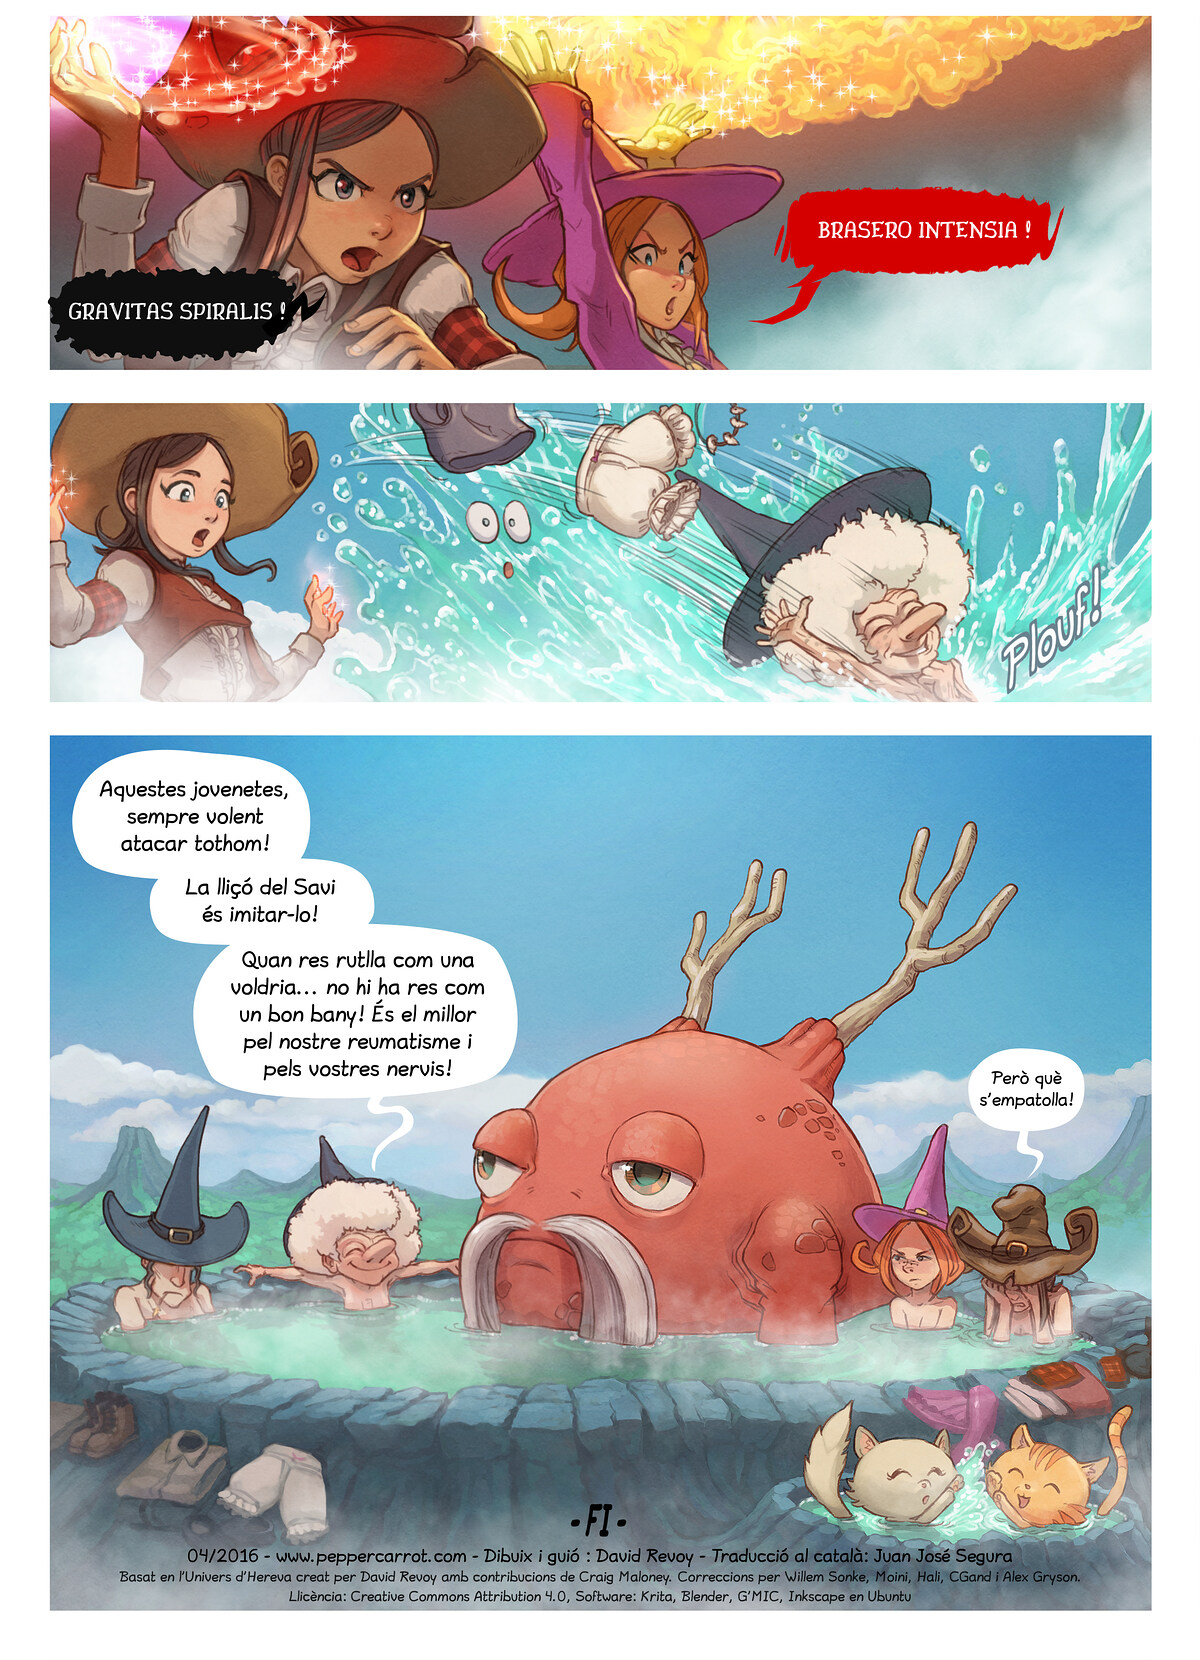 A webcomic page of Pepper&Carrot, episodi 16 [ca], pàgina 6